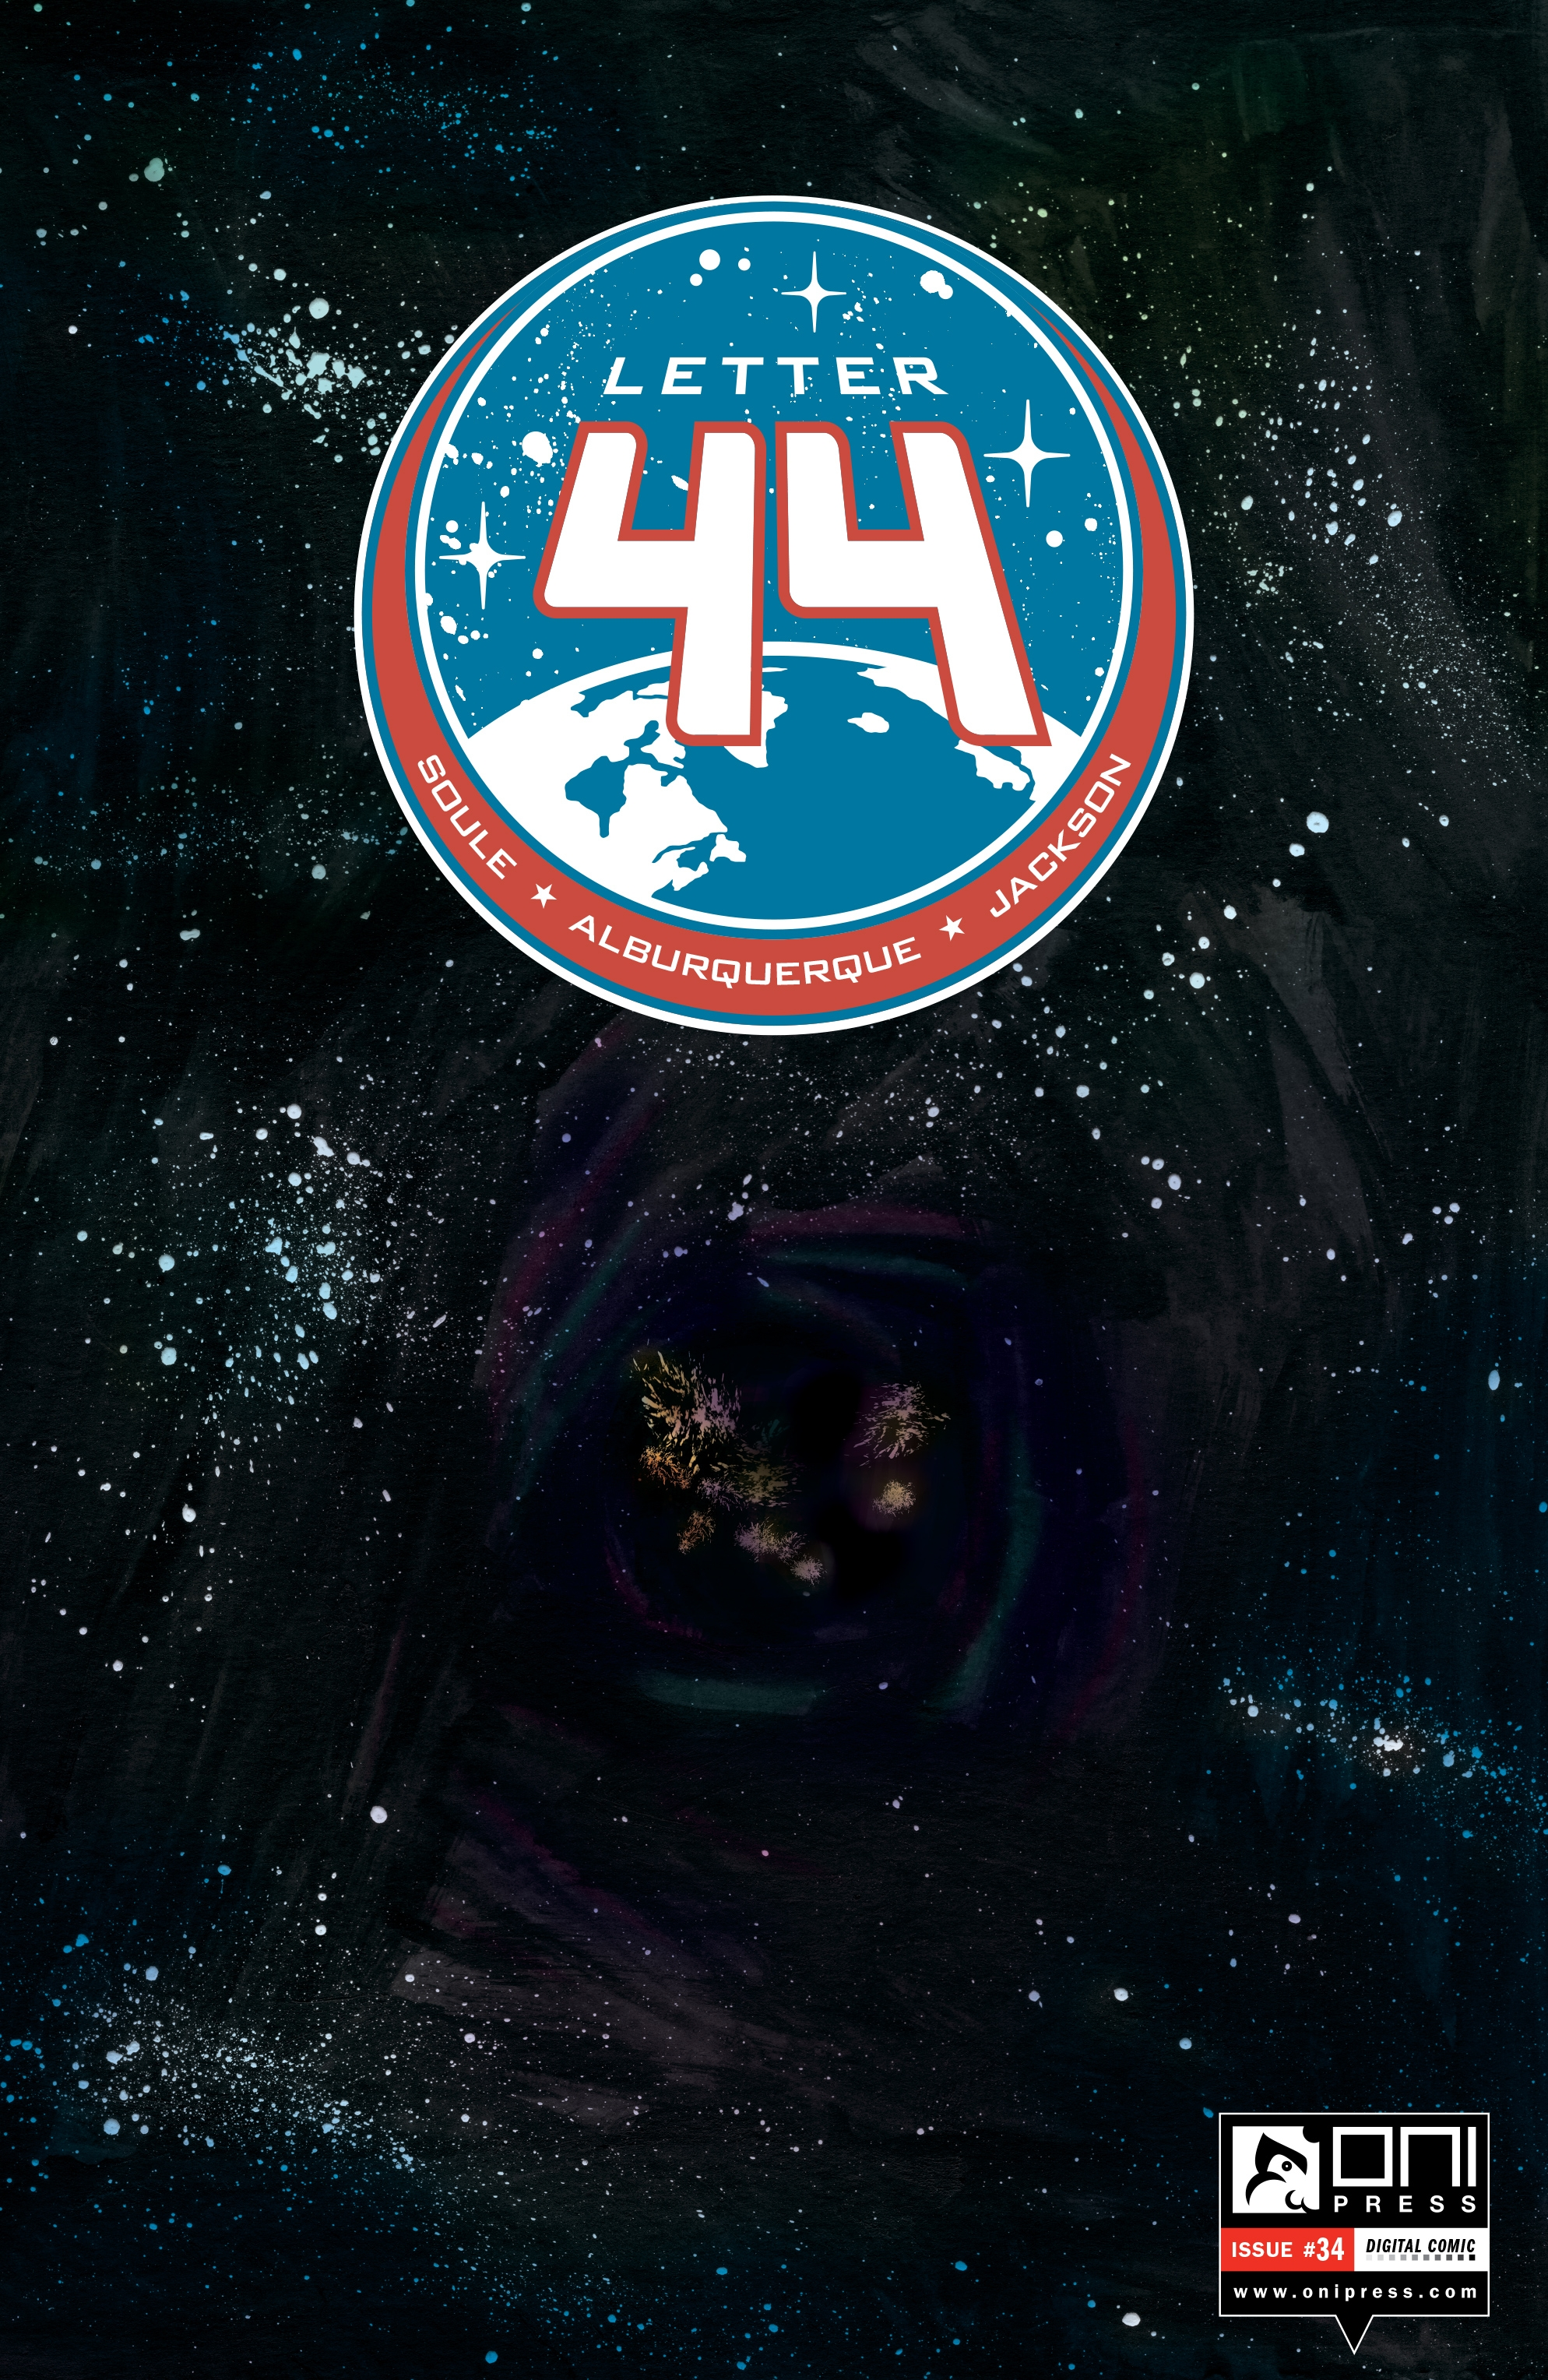 Read online Letter 44 comic -  Issue #34 - 1